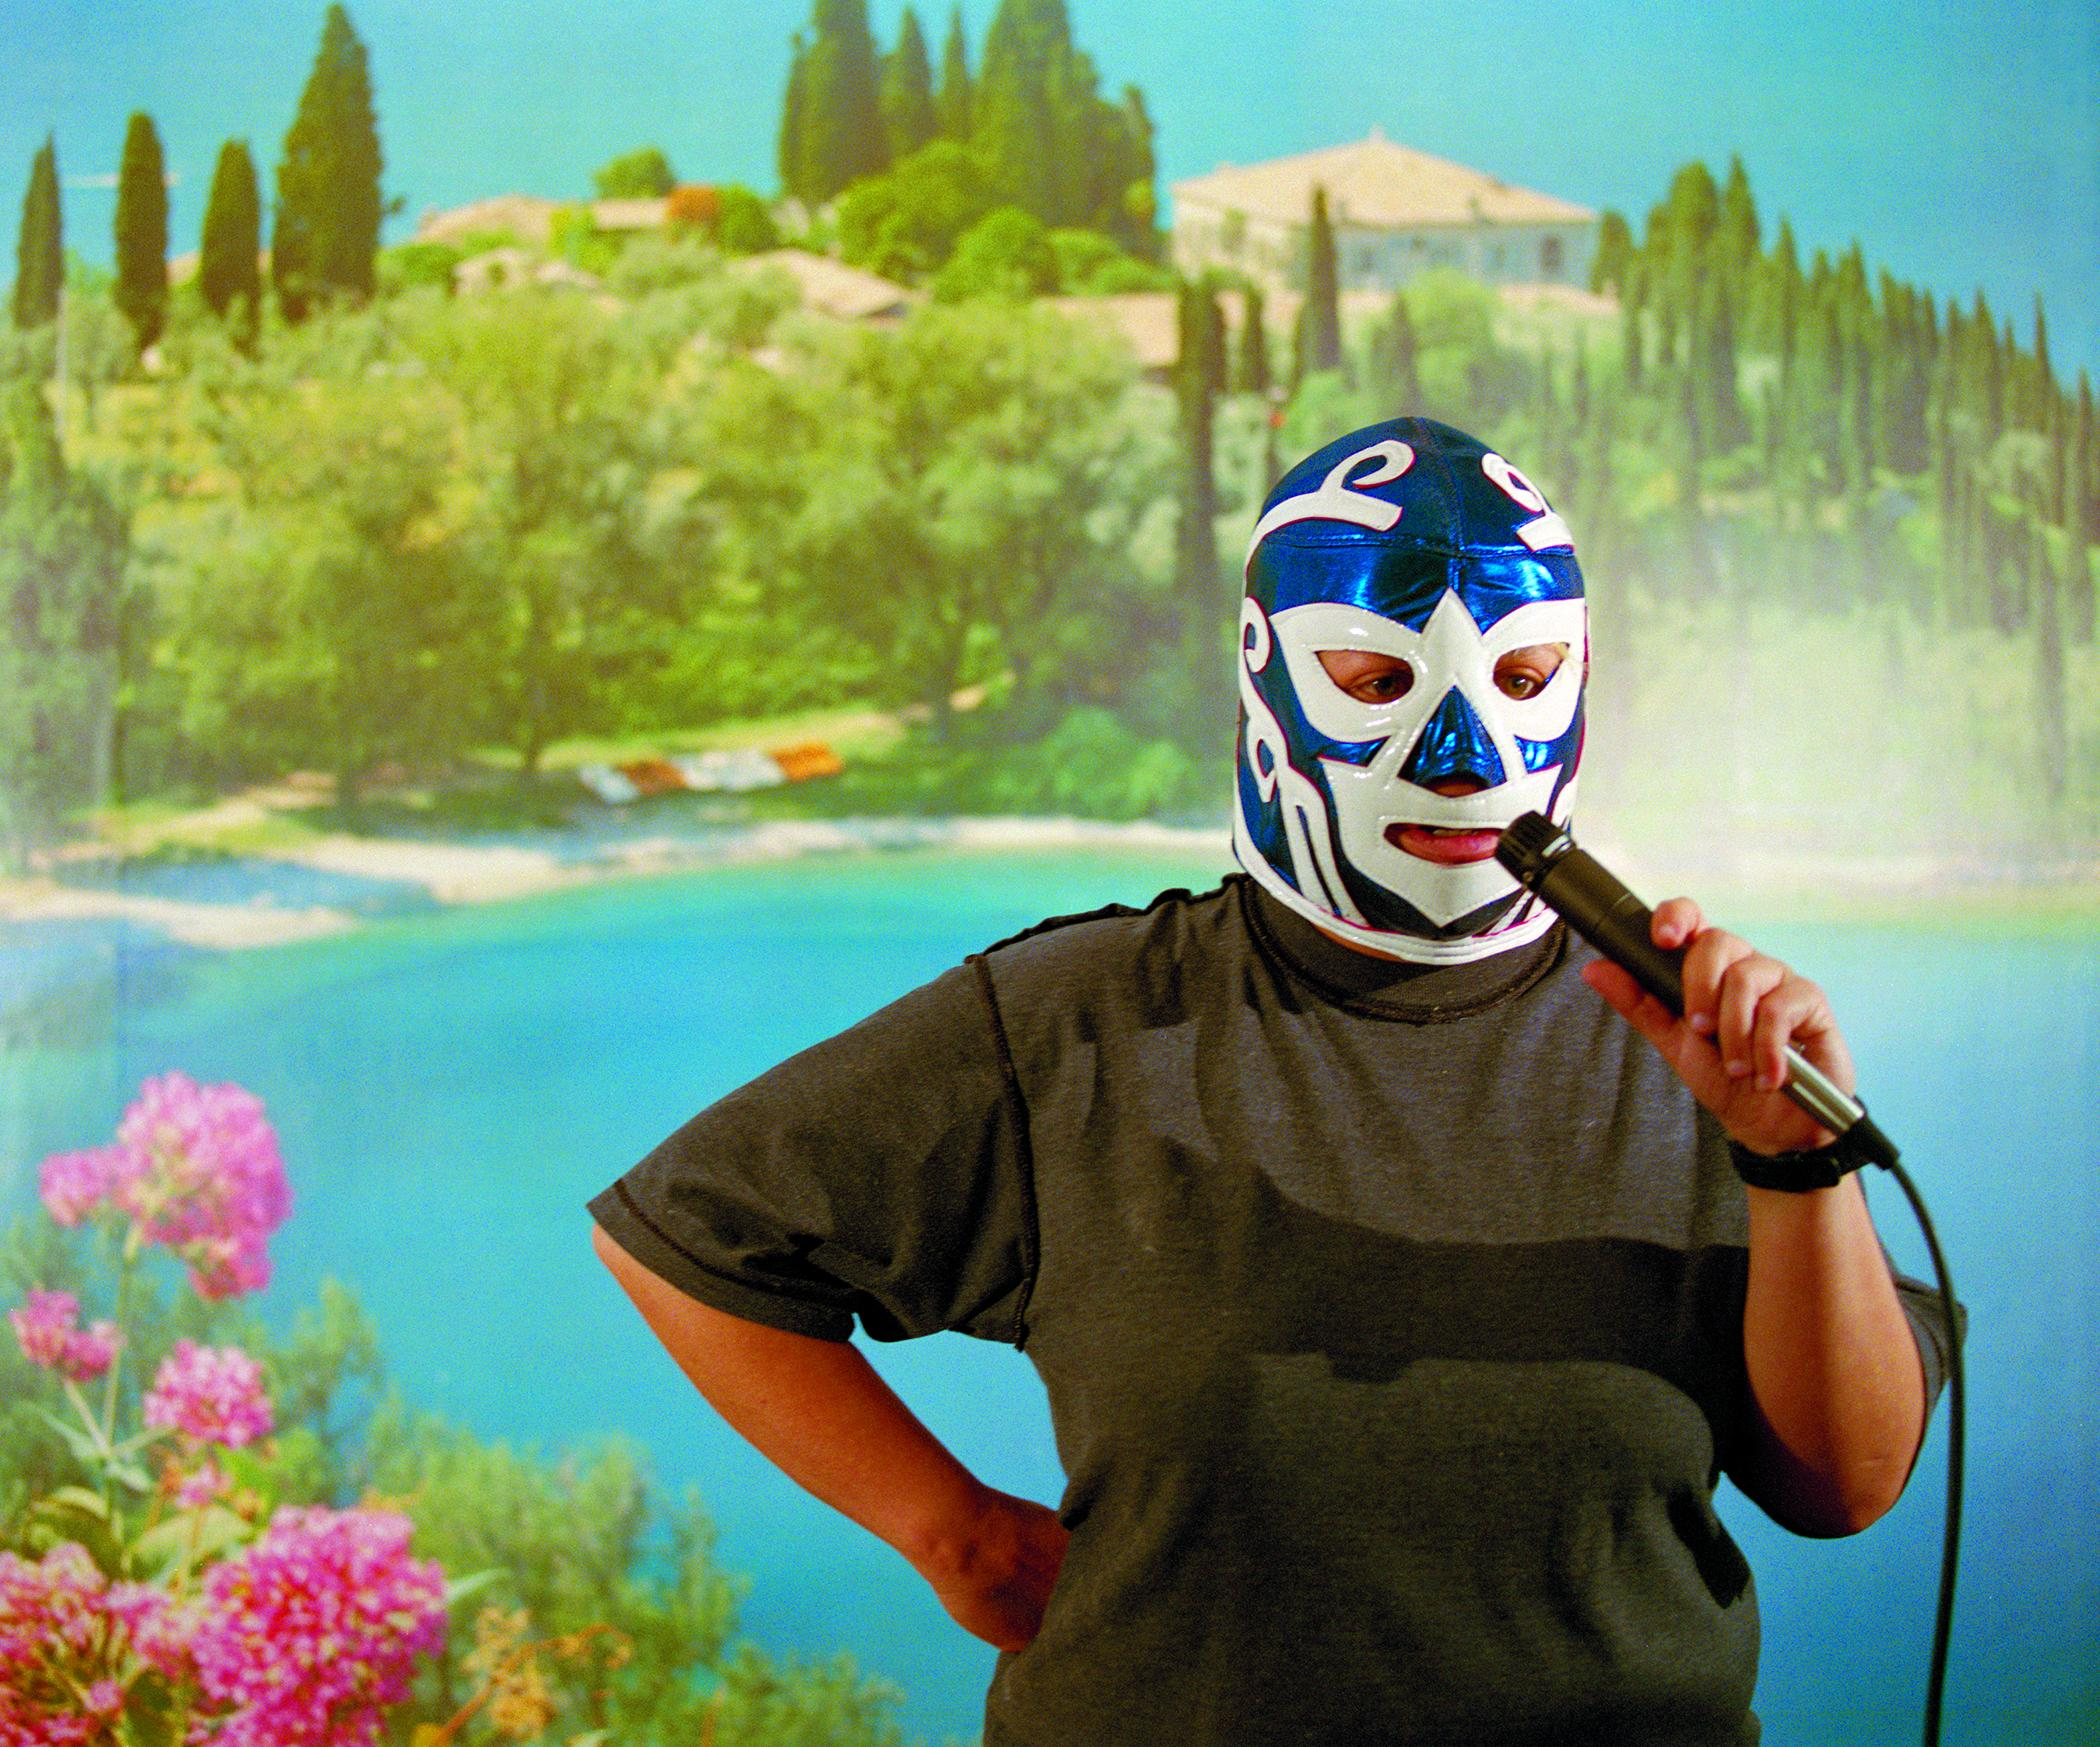 Against a tropical backdrop, a person in a blue-and-white wrestling mask holds a microphone up to their mouth.